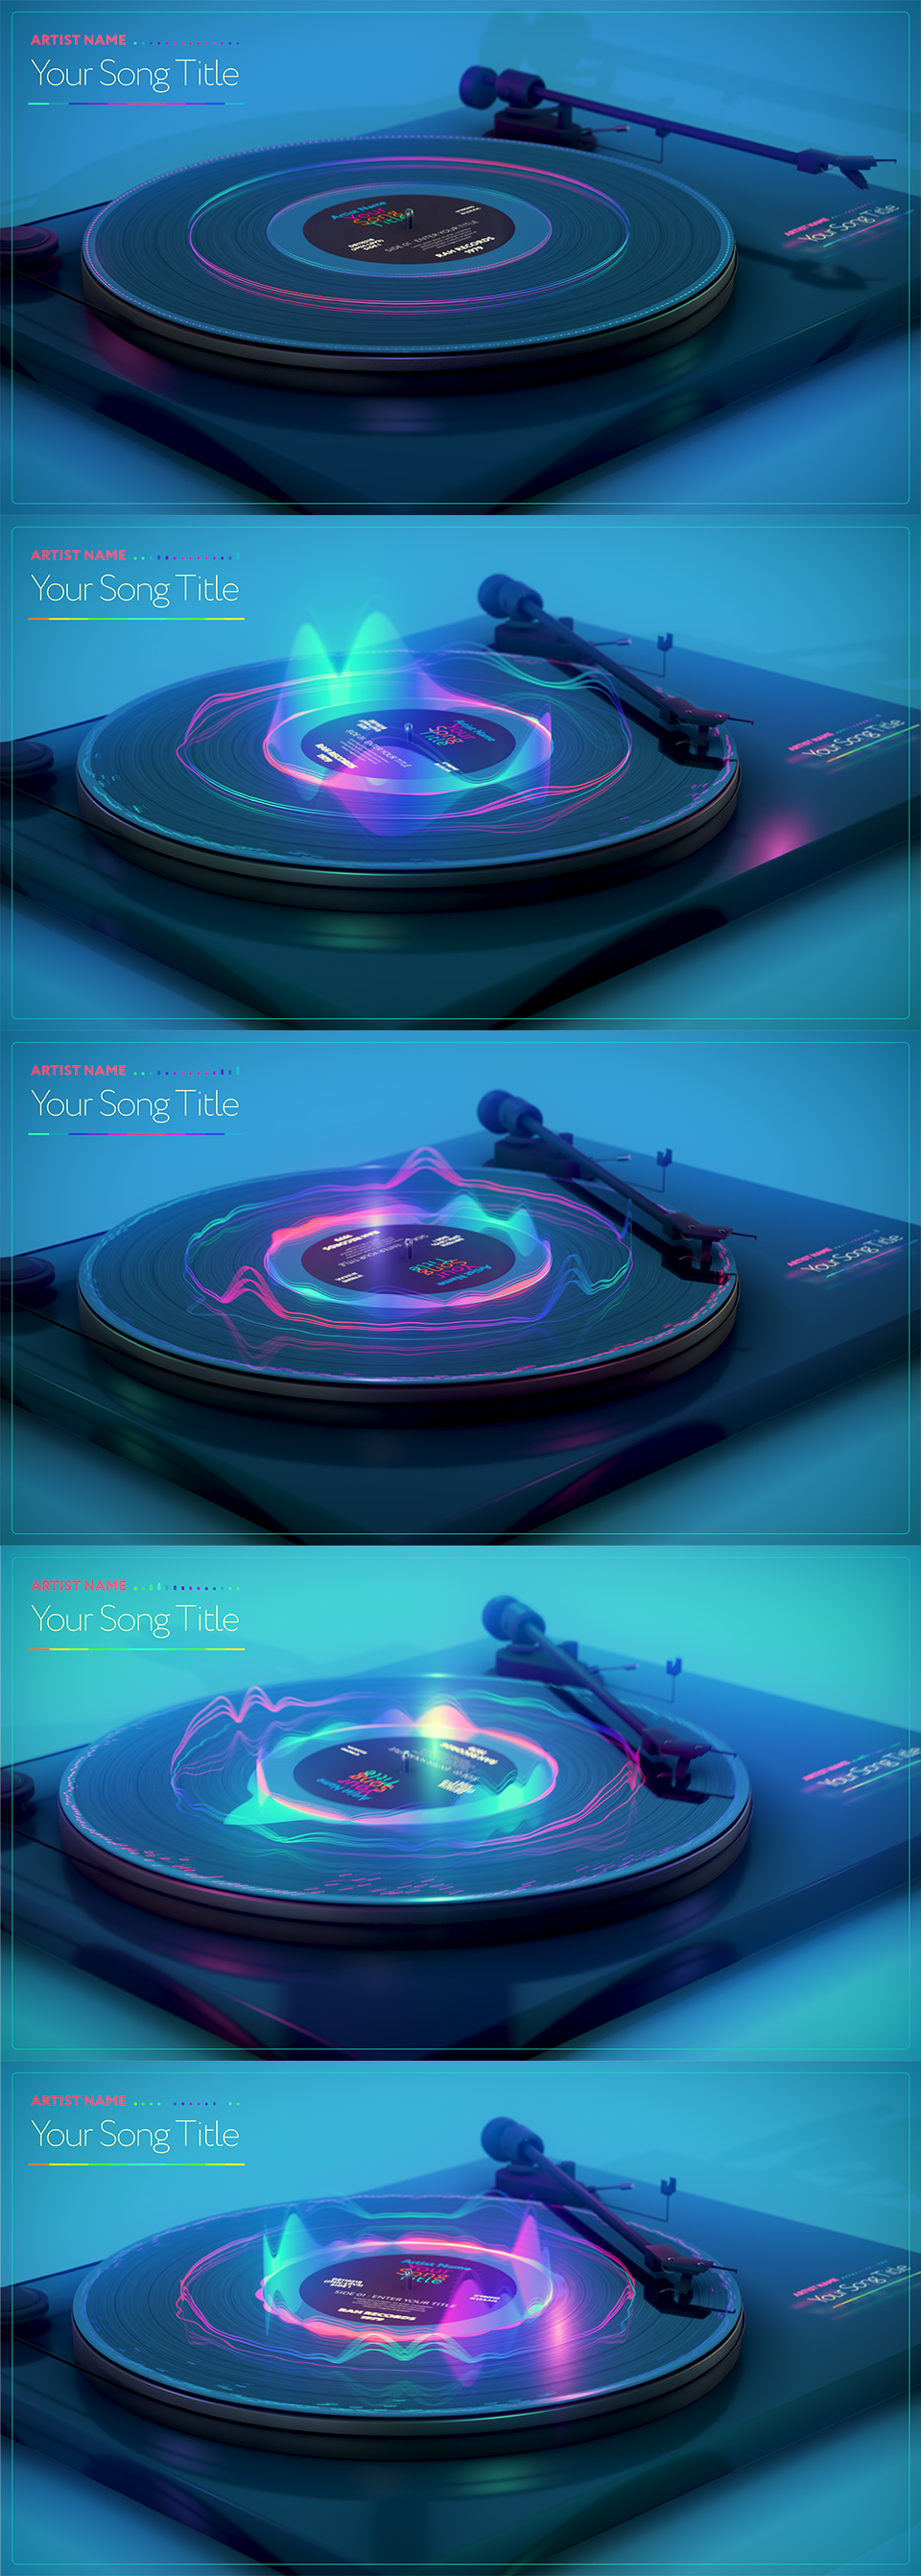 Turntable Music Visualizer - 2